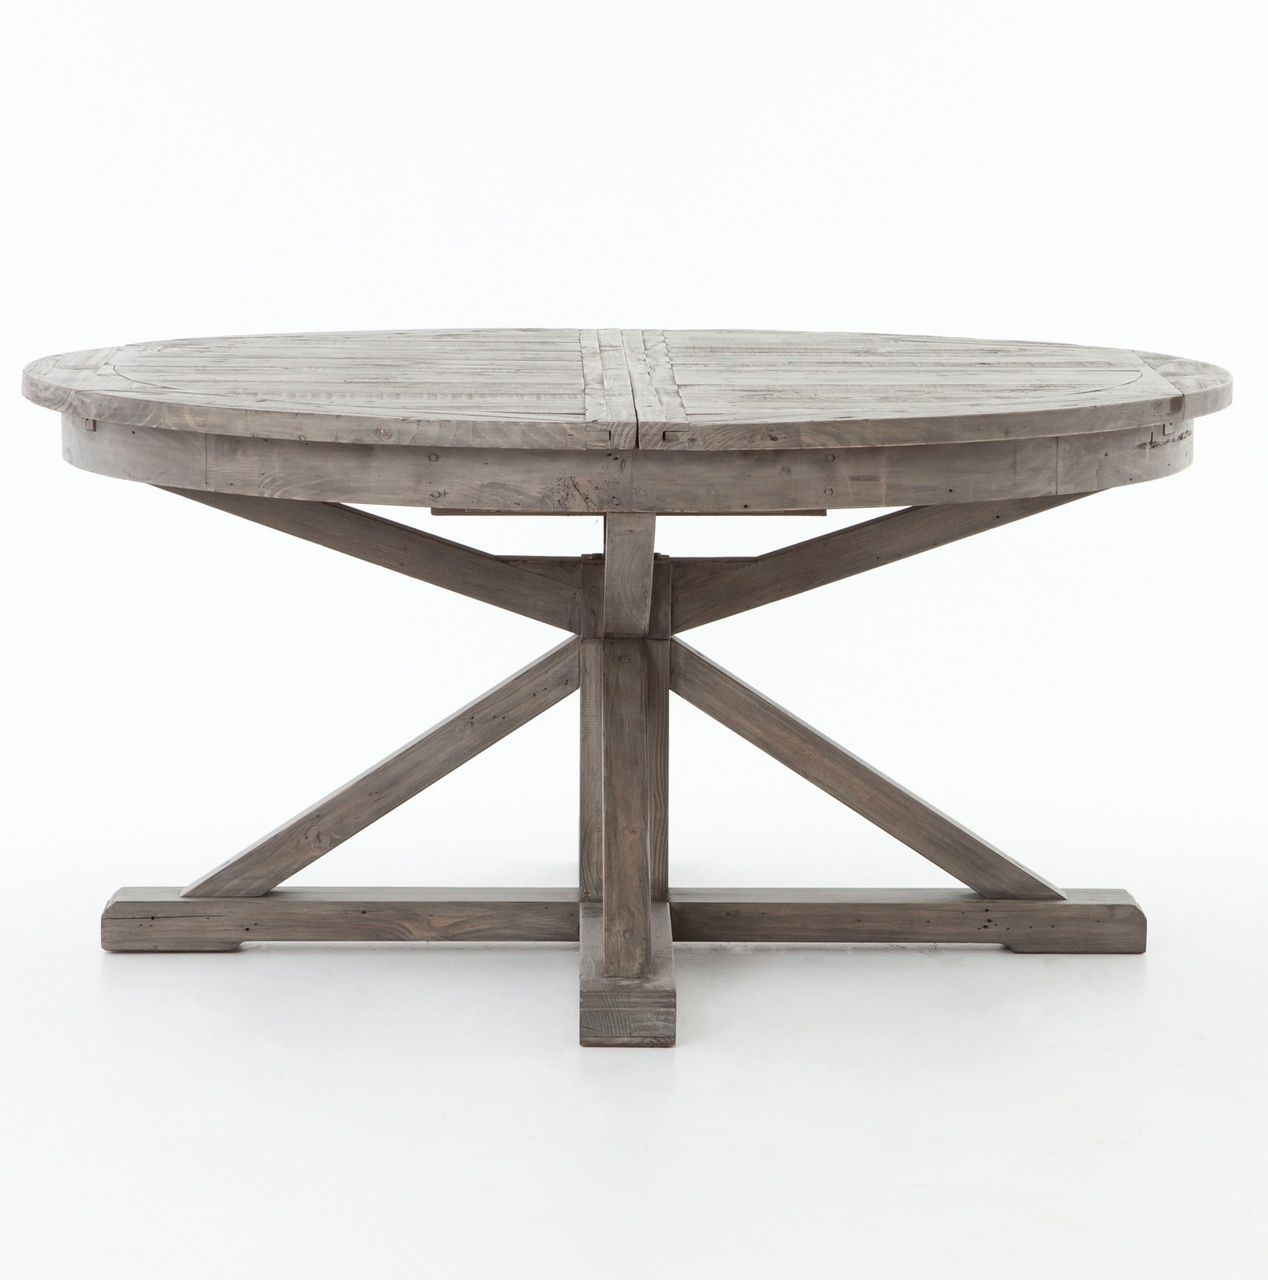 Cintra Reclaimed Wood Extending Round Dining Table 63 Round Pedestal Dining Wood Dining Room Table Expandable Round Dining Table